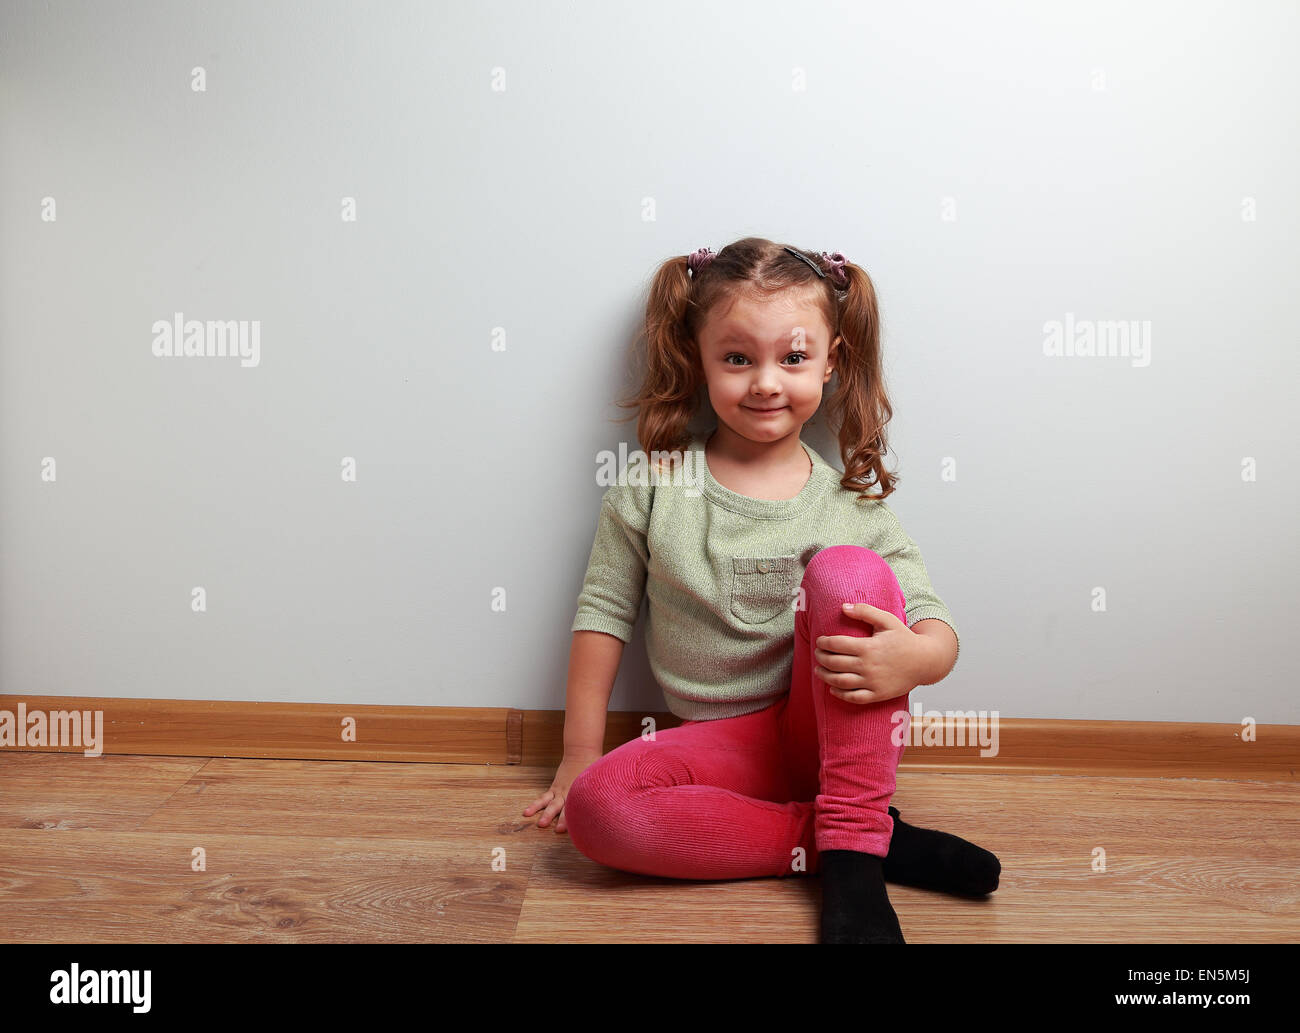 Fun grimacing girl sitting on the floor and smiling on blue wall background - Stock Image